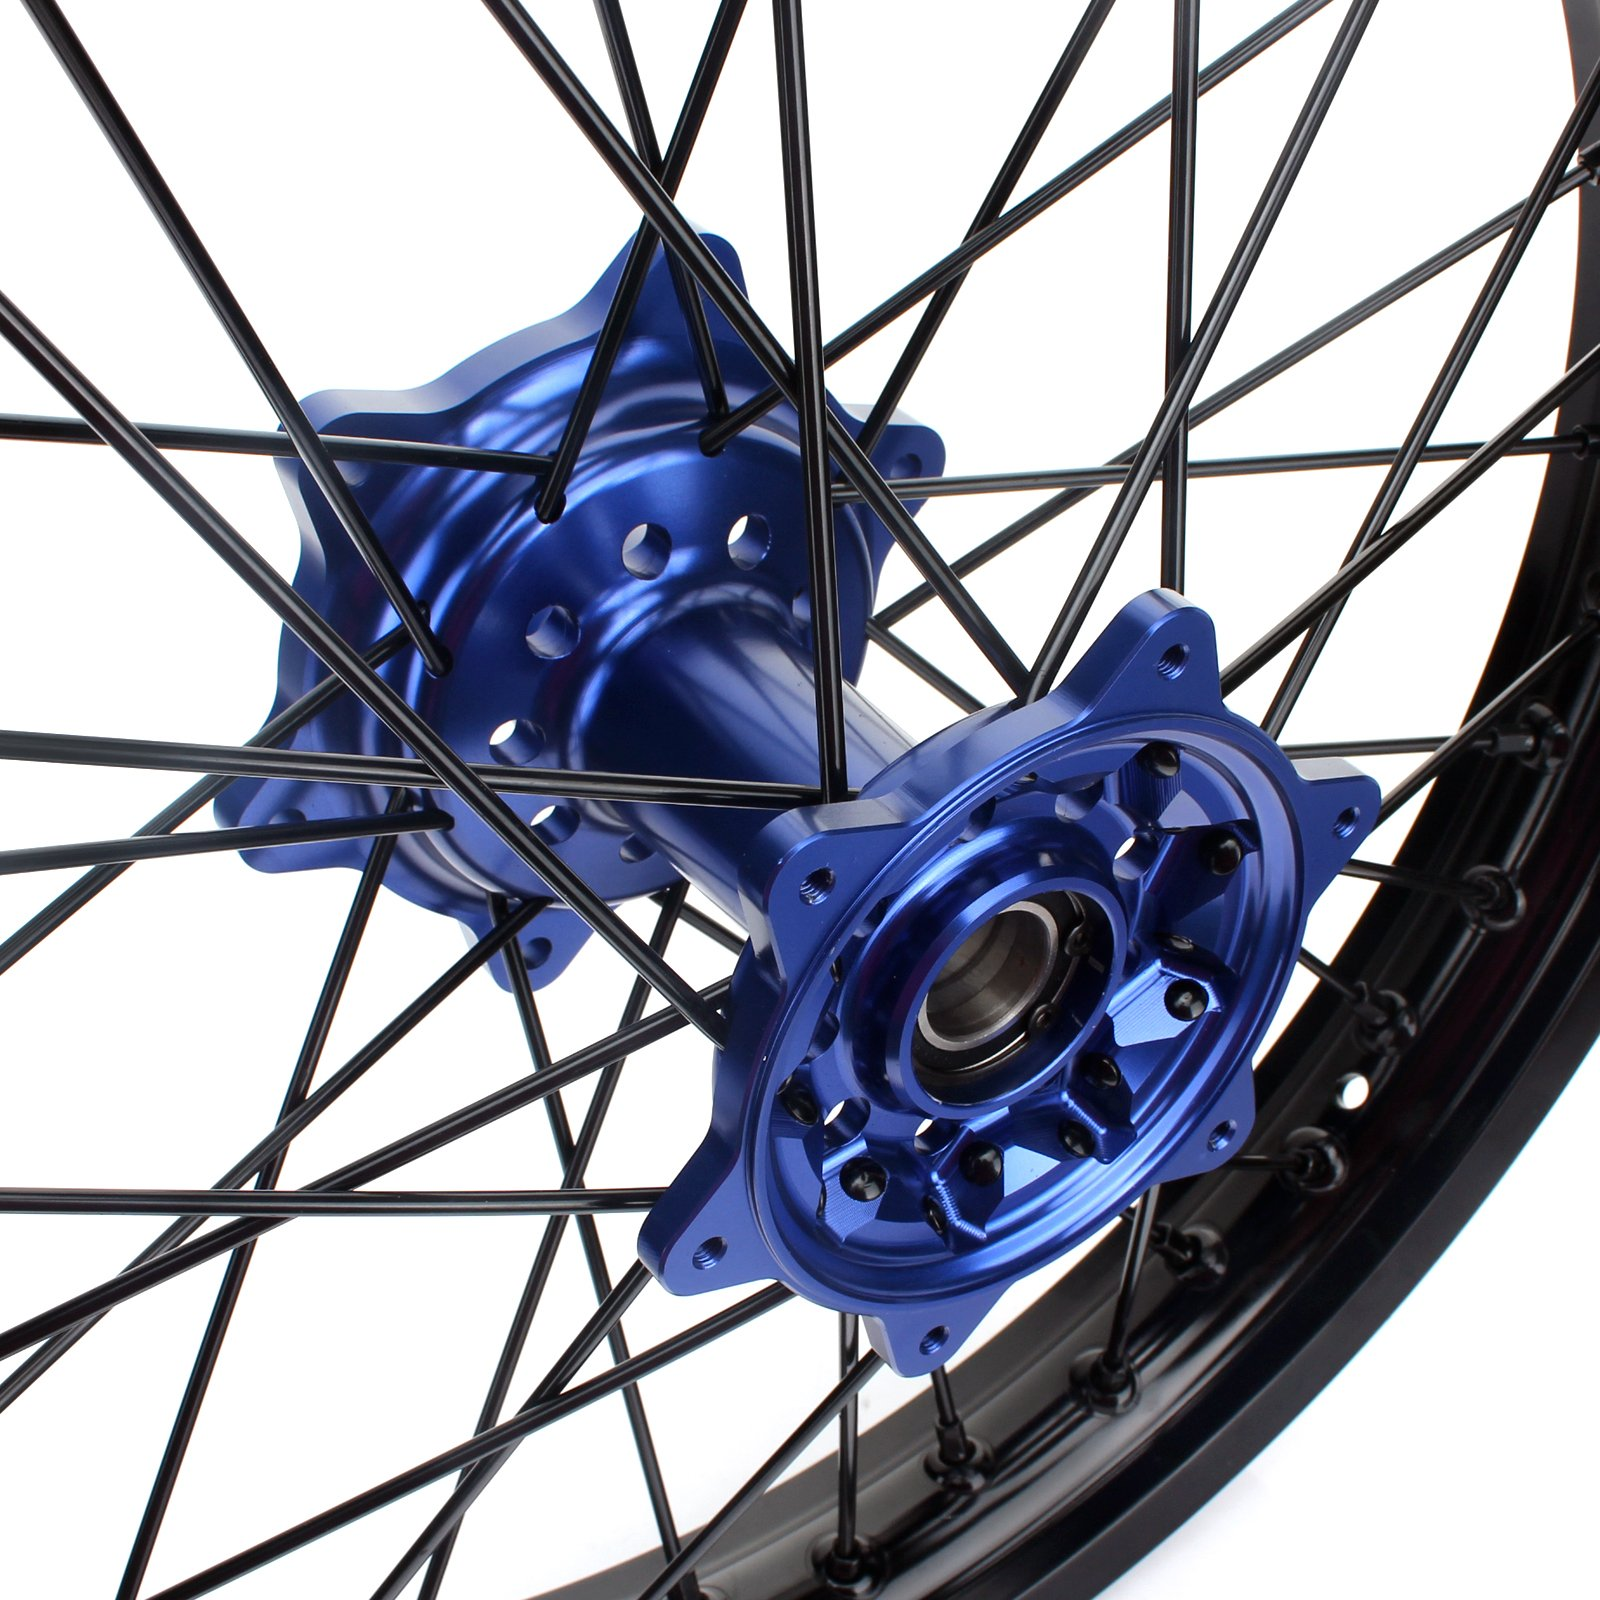 TARAZON 18'' MX Rear Complete Wheel Set Rim Spokes Blue Hub for Yamaha YZ250F YZF250 YZ450F YZF450 2009-2017 by TARAZON (Image #2)